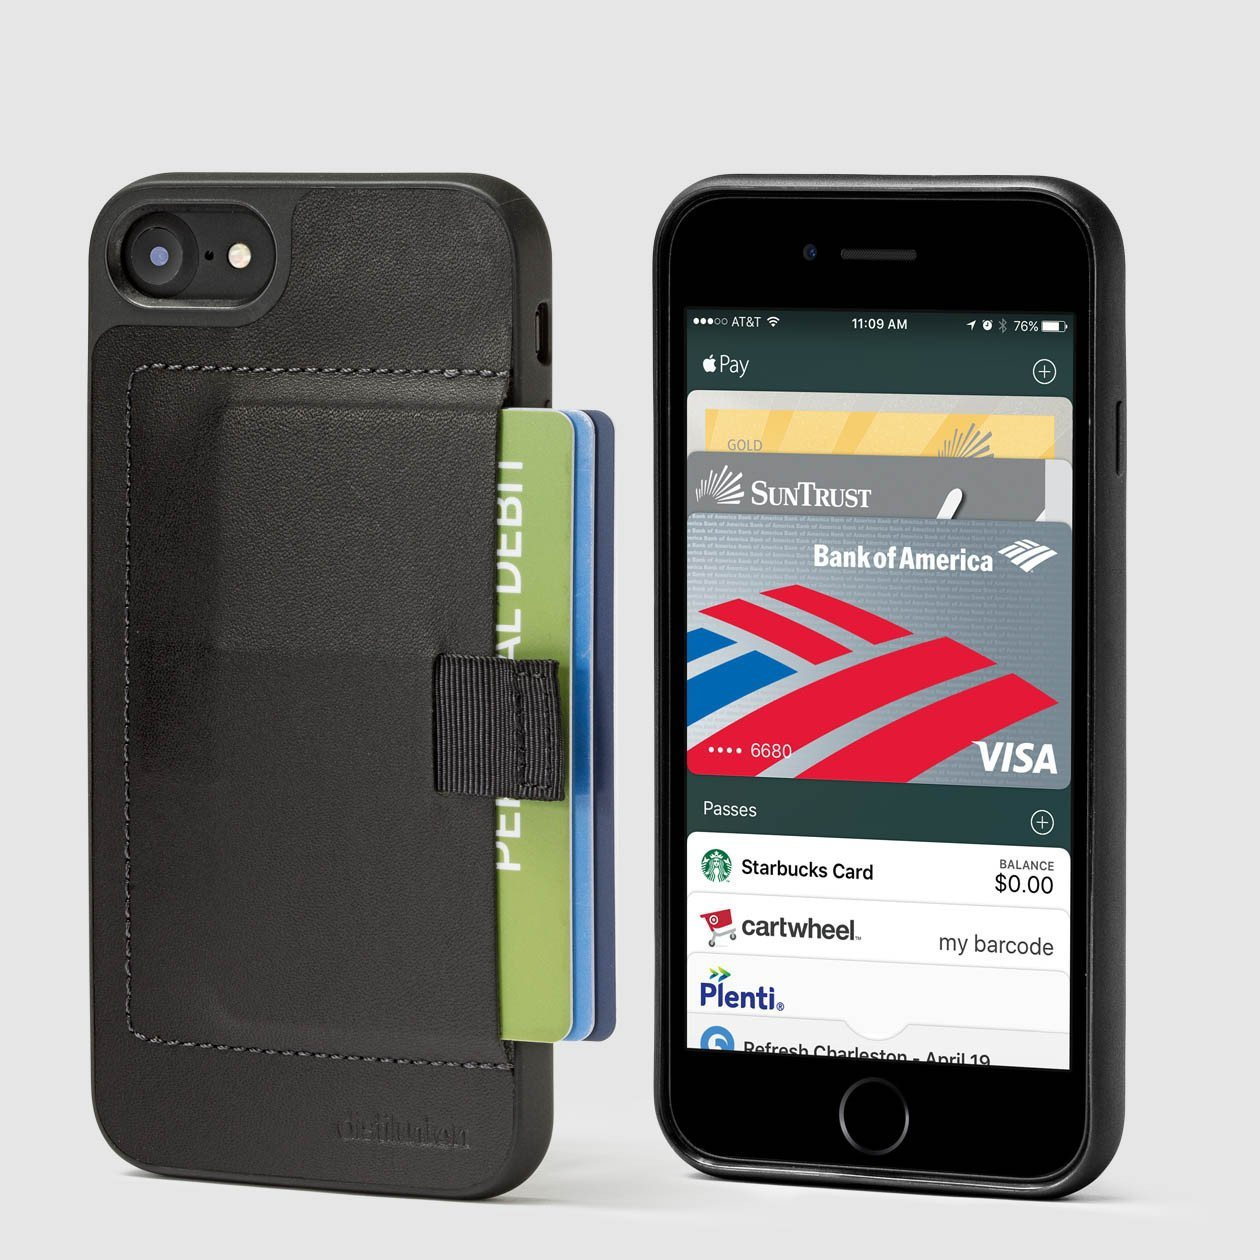 055018a8dc4 ... Distil Union Wally Case for iPhone 7 Wallet Case with Pull-Tab in Black  Leather ...